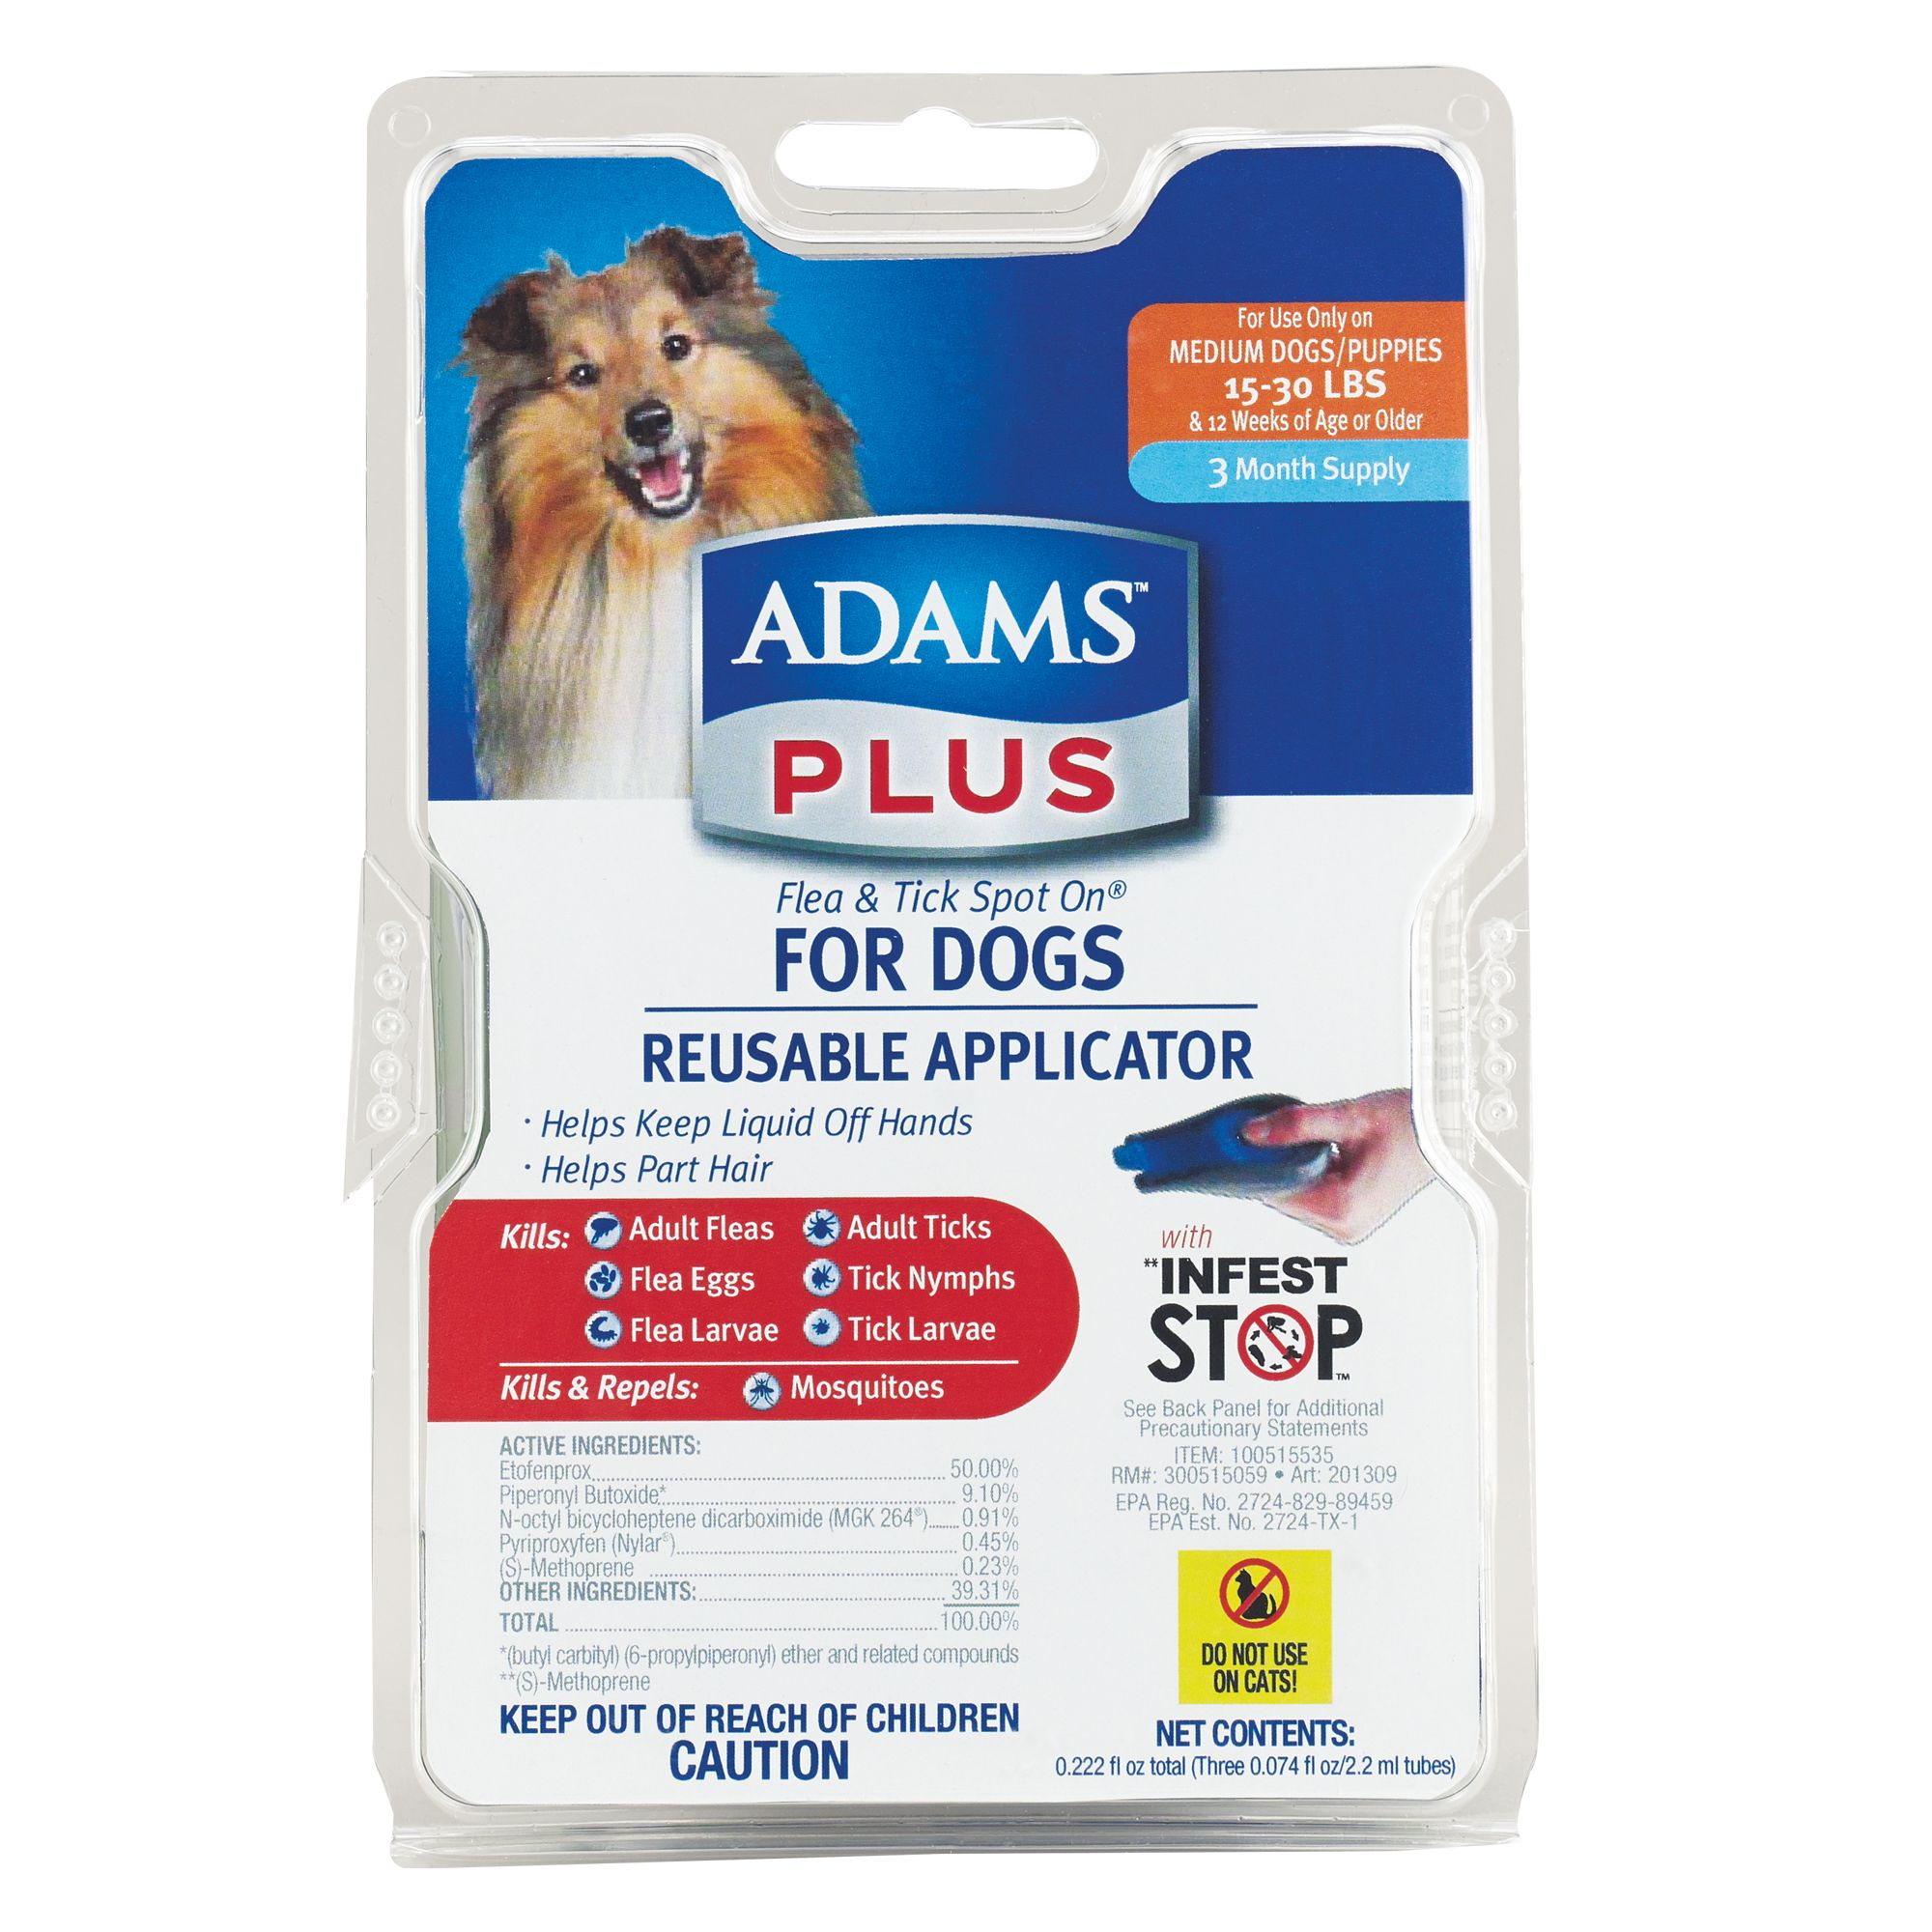 Adams Plus 15 30lb Dog Flea And Tick Protection Size 15 30 Lbs